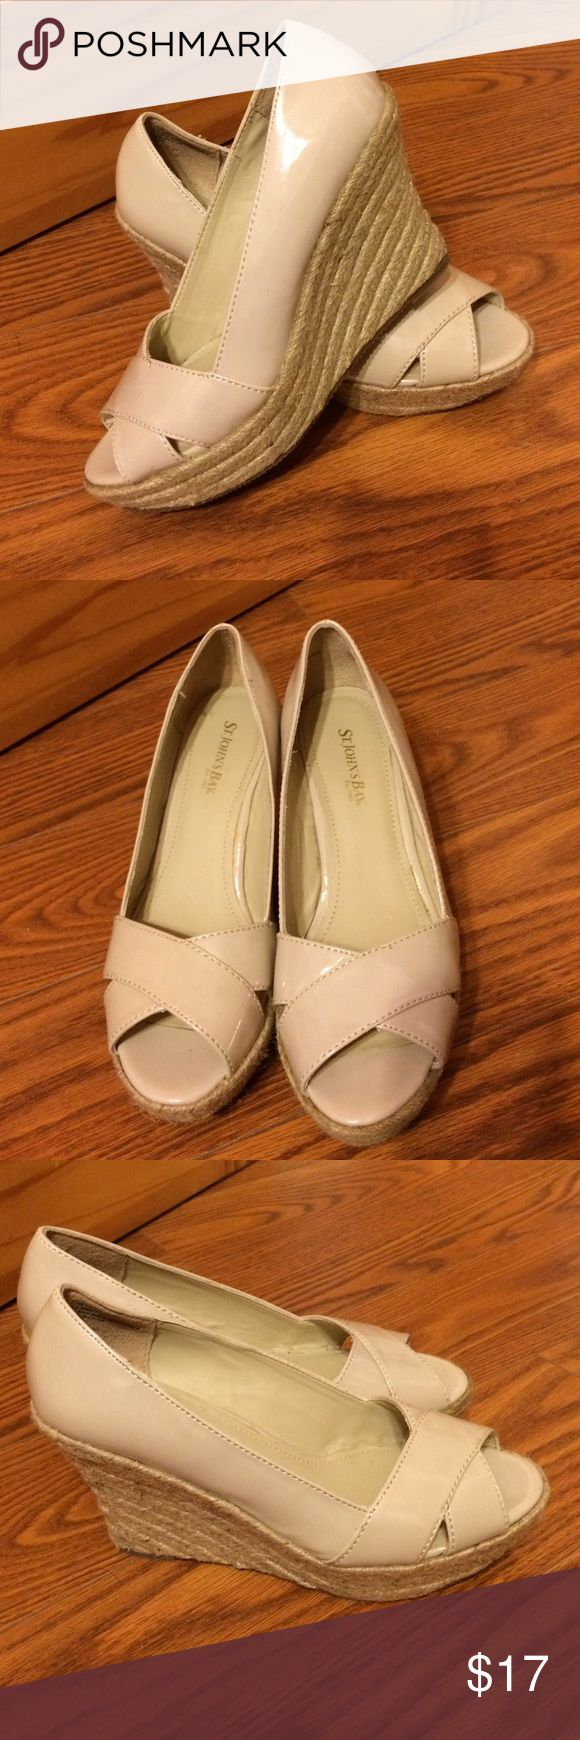 Nude Espadrille Wedges Barely work. Nude paten upper with jote rope accent on wedges. Good condition. Some surface fuzz on jote rope with is typical. Bottom of soles in like new condition. Reasonable offers welcome. St. John's Bay Shoes Espadrilles